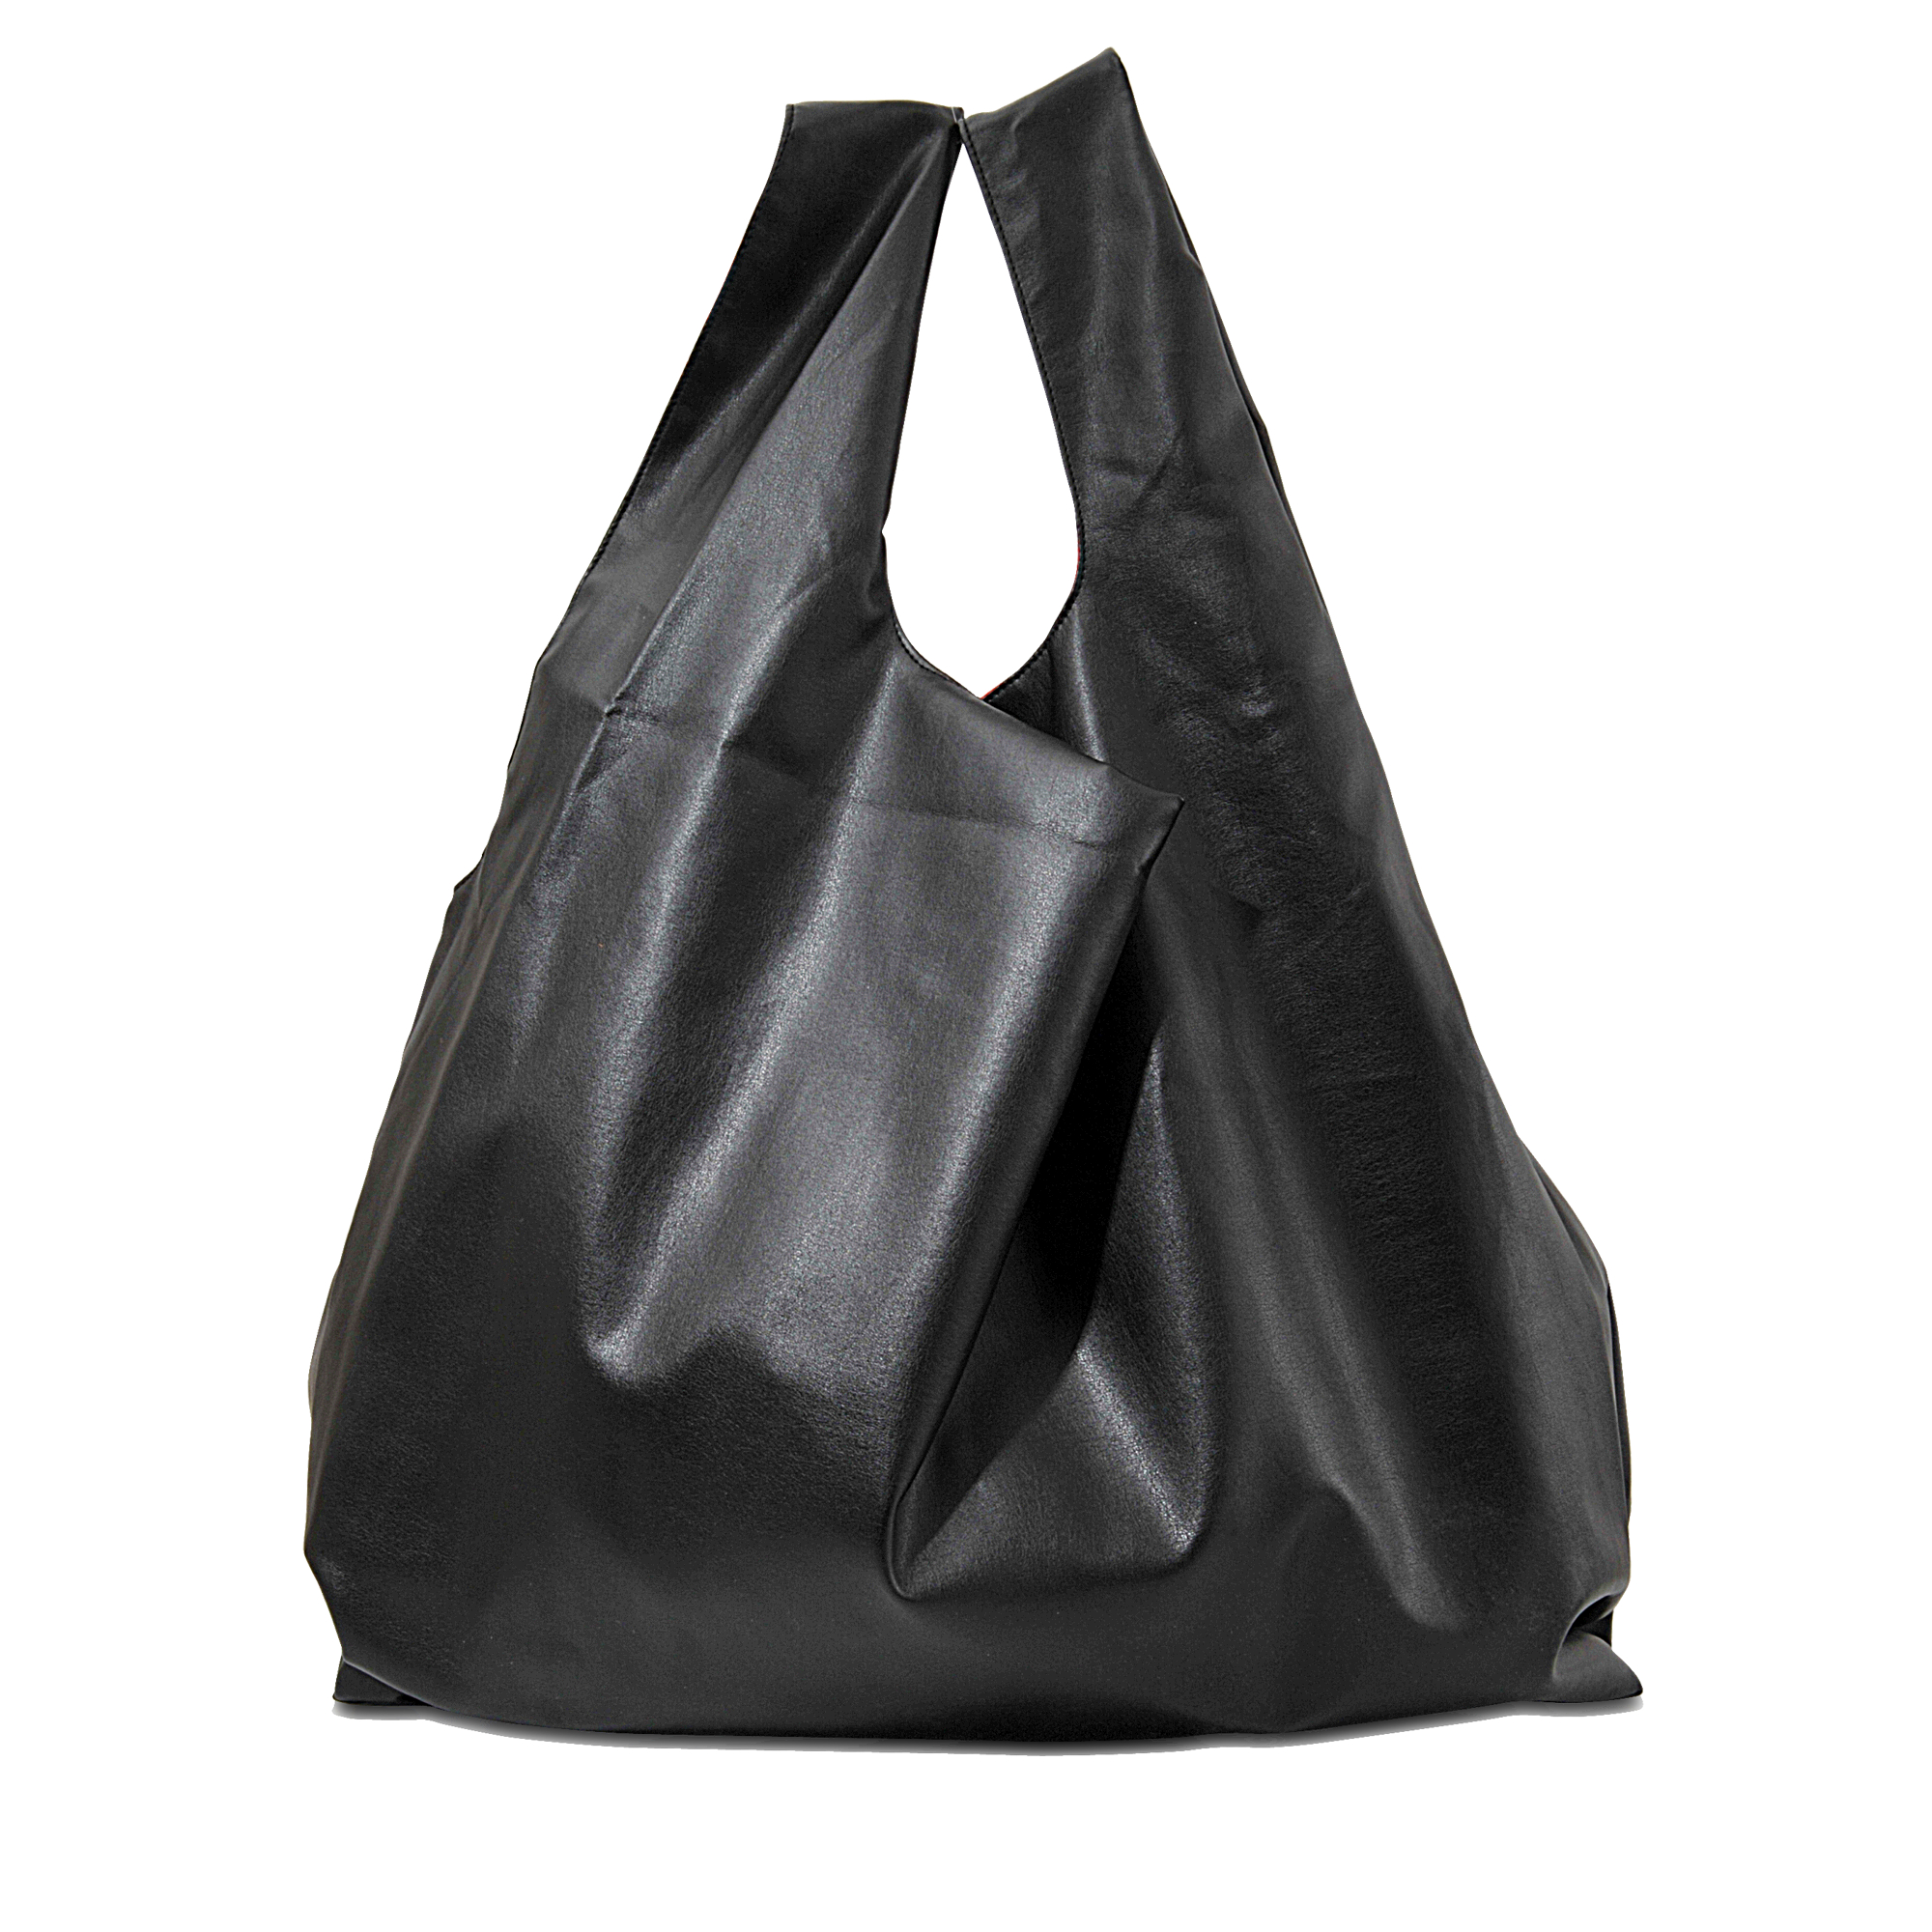 Maison Martin Margiela Black reptile printed shopping bag dWpJ4